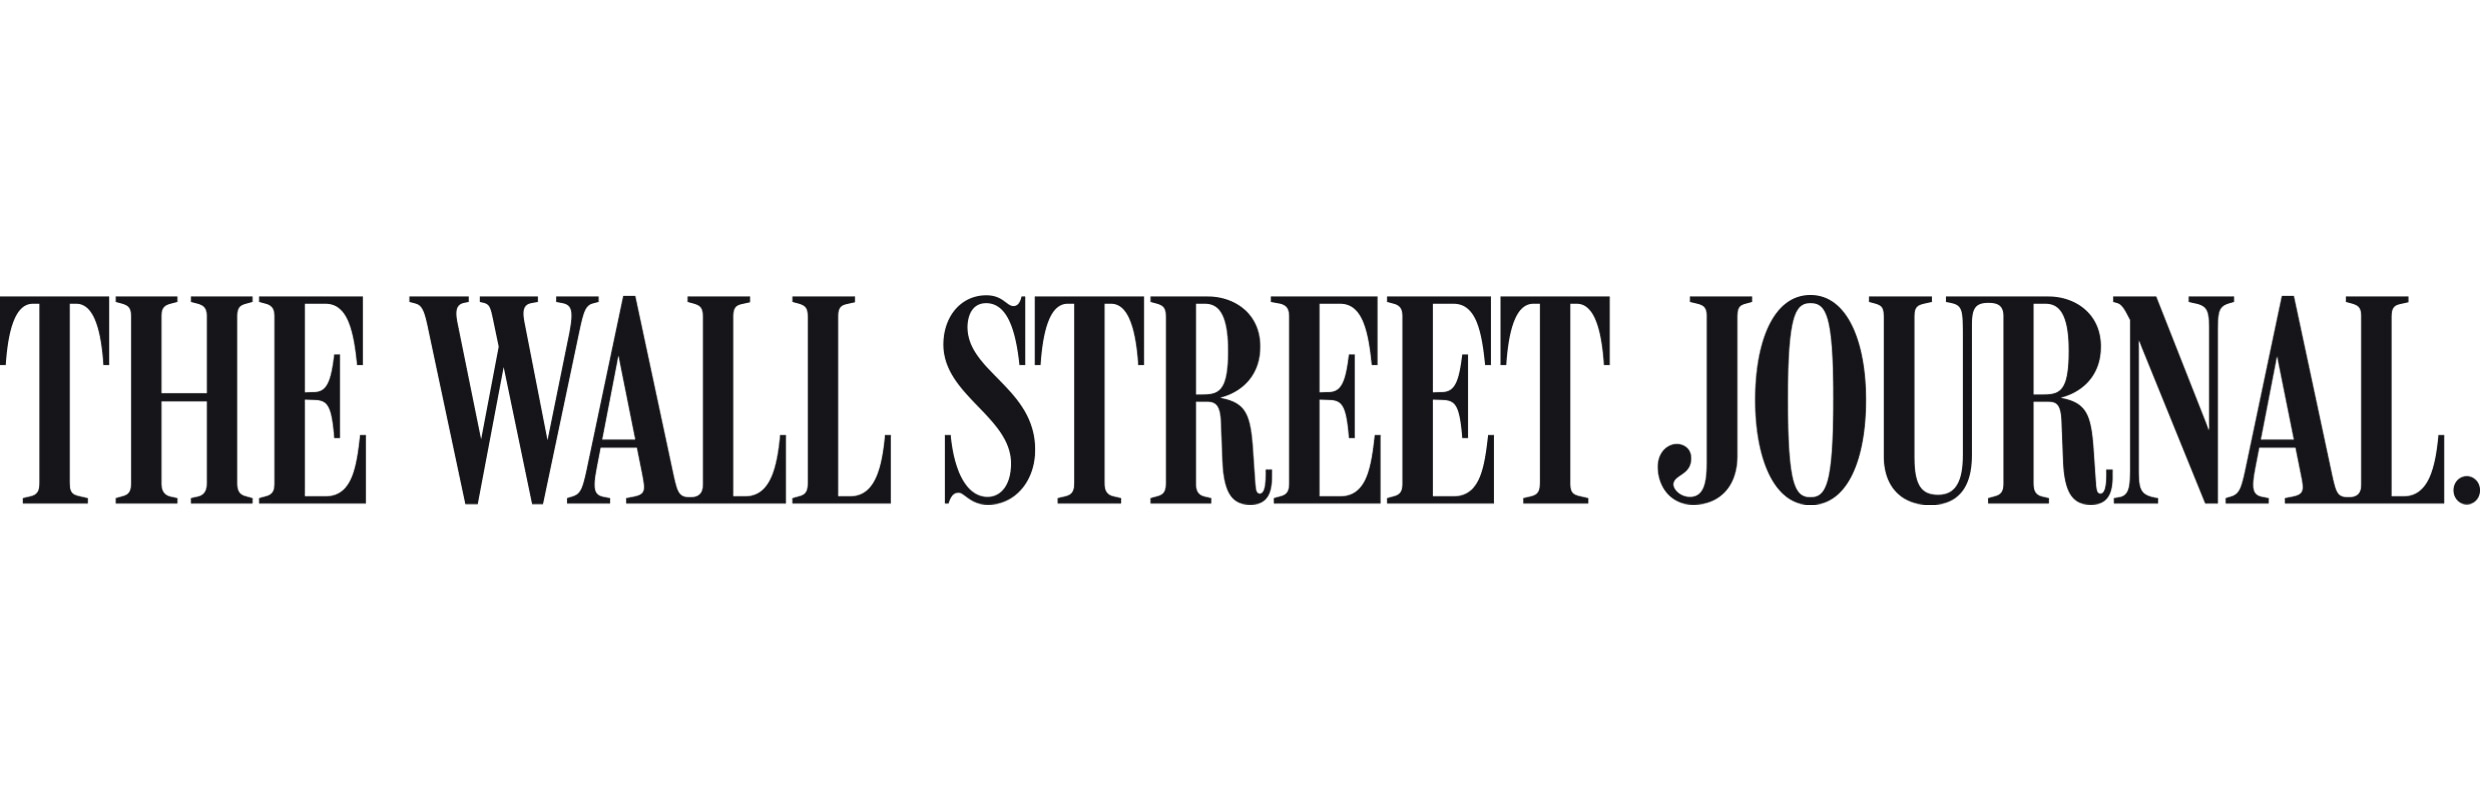 The wsj selected